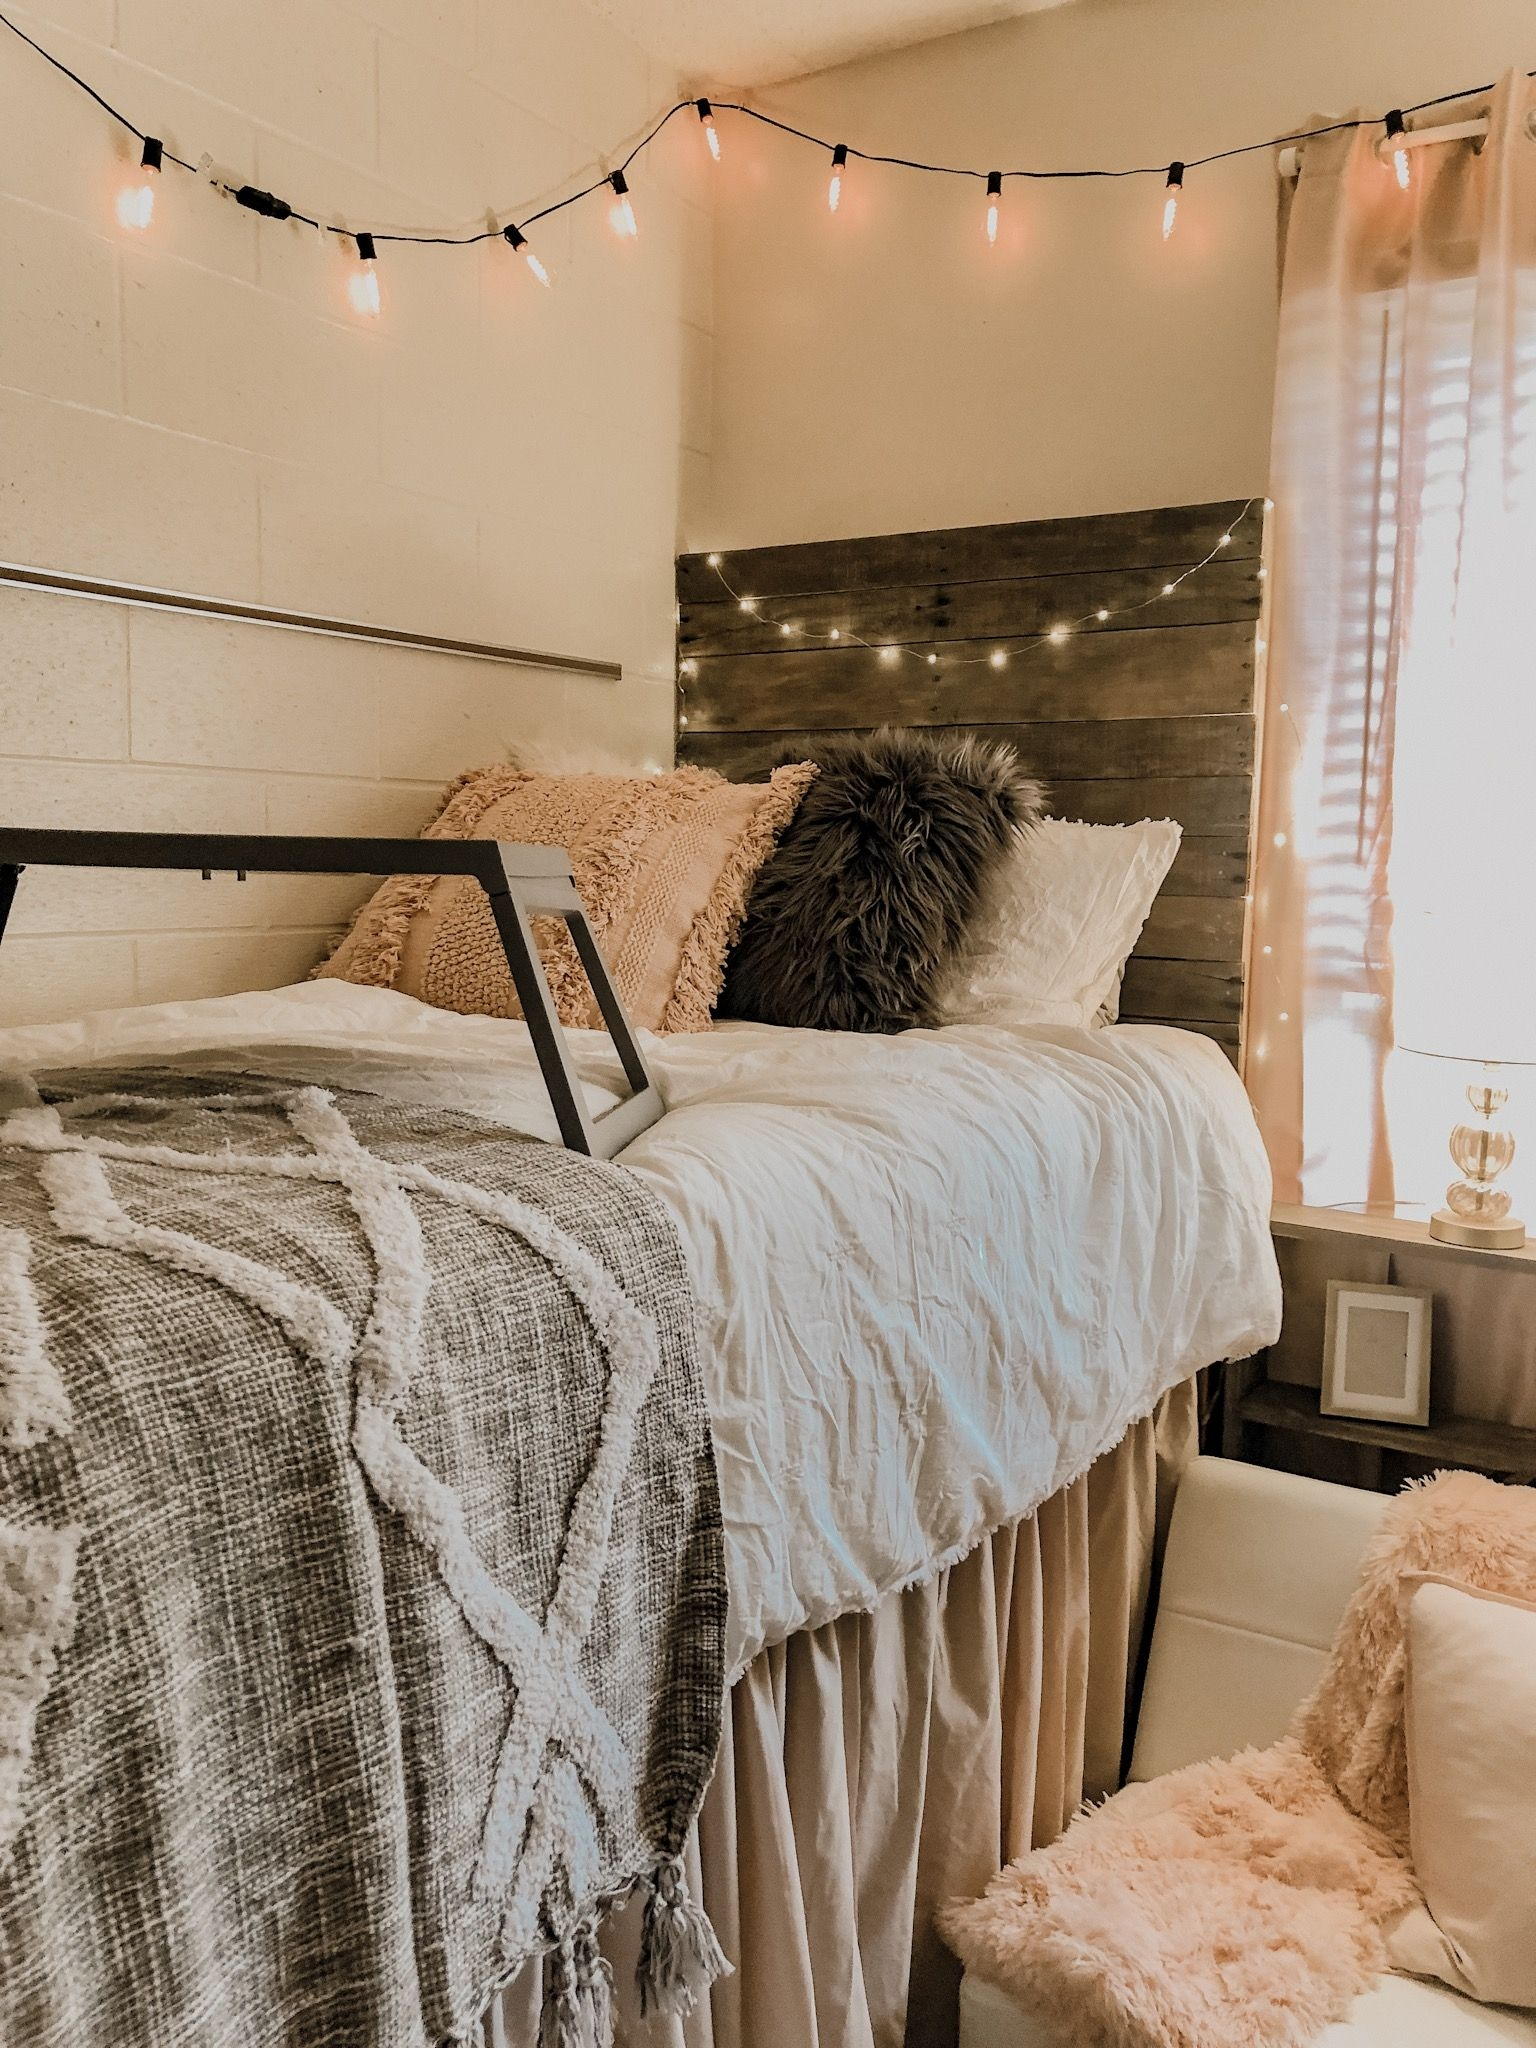 Breathtaking Dorm Rooms Pinterest On Decorative Pin by Cassie Moshy On My Dorm Room ❤️ On Dorm Rooms Pinterest